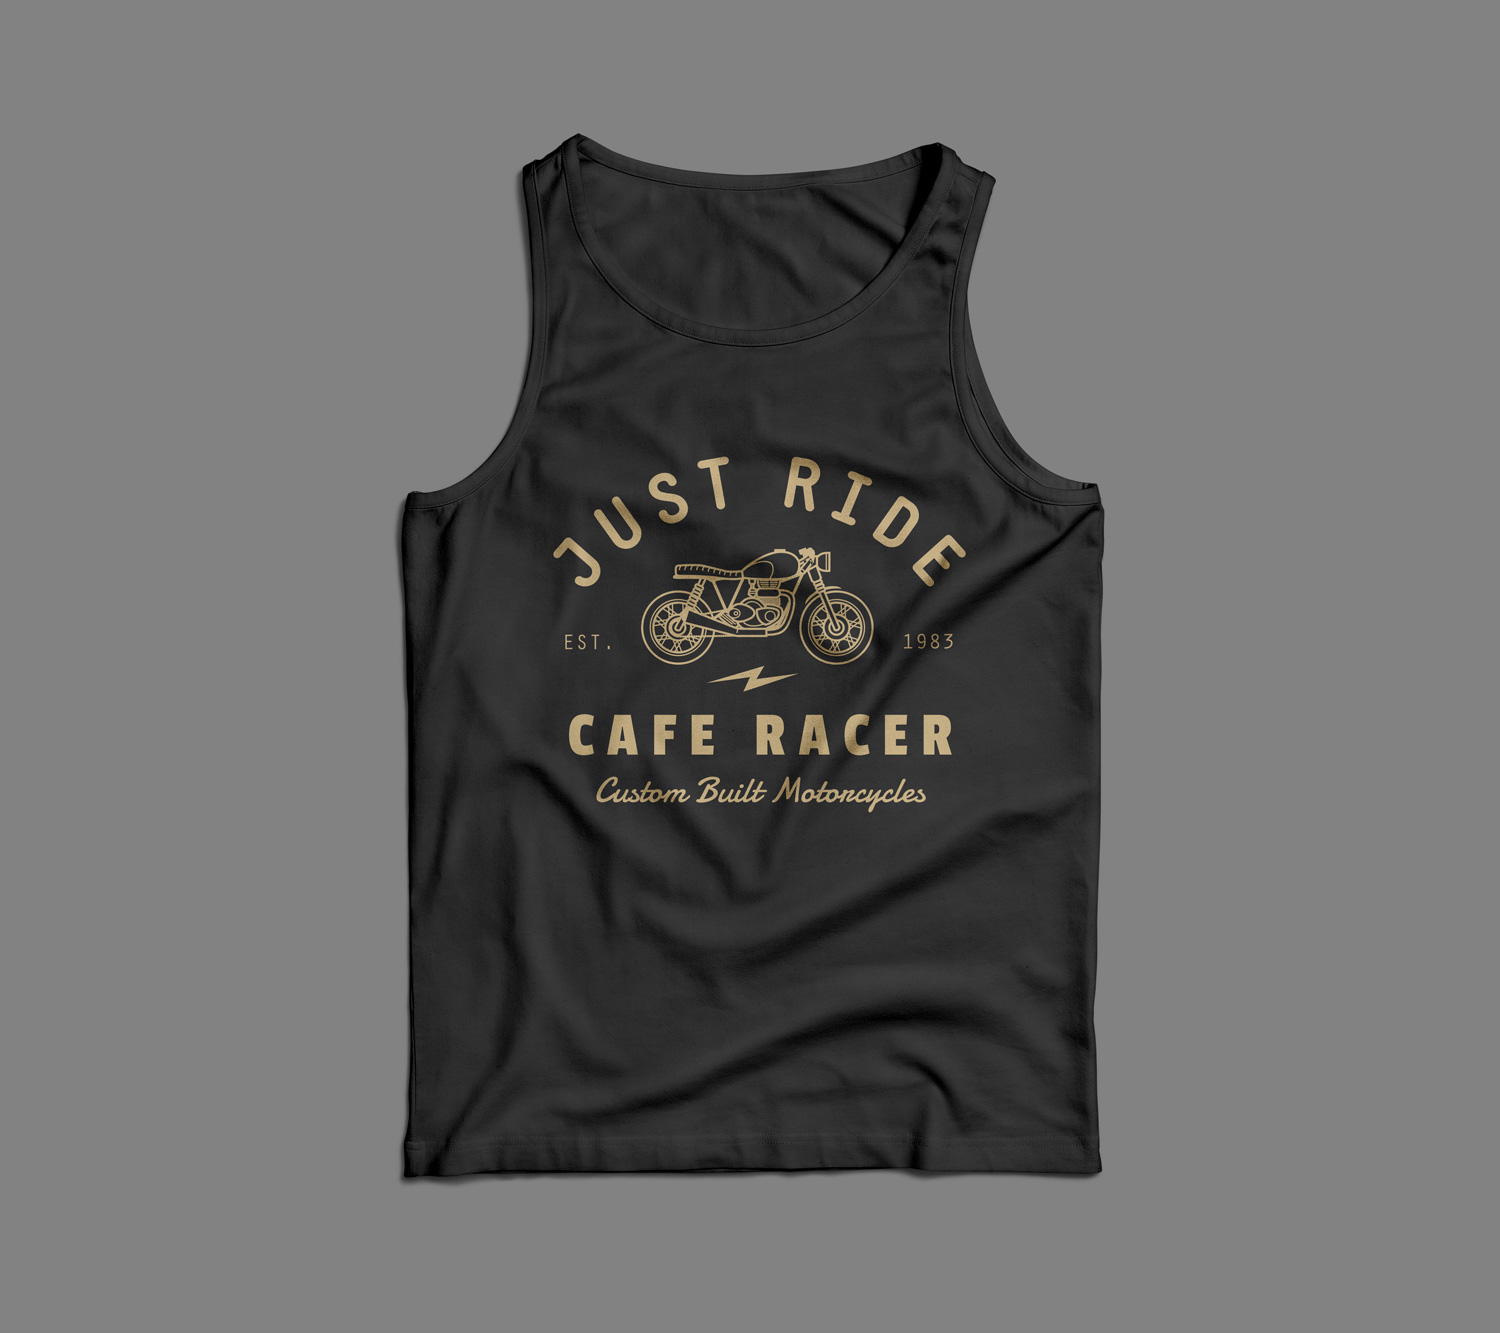 apparel mockup tank top mockup